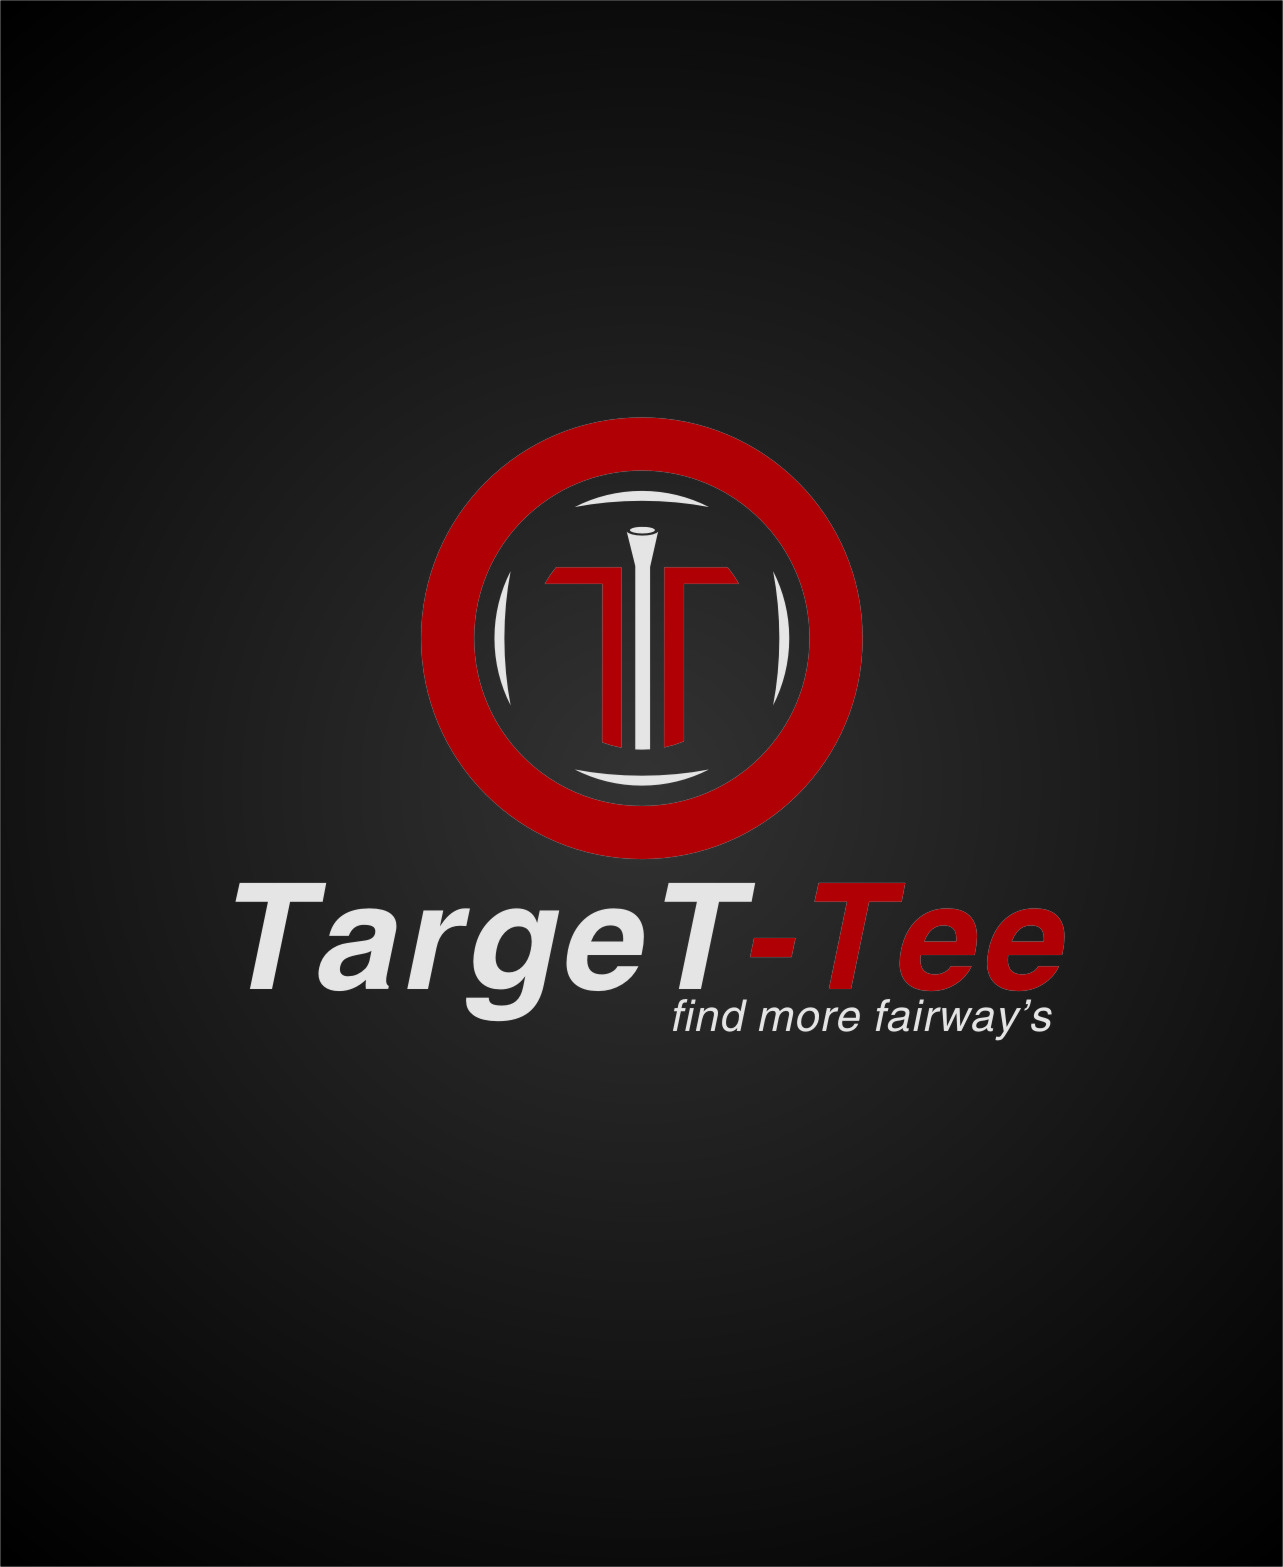 Logo Design by Ngepet_art - Entry No. 18 in the Logo Design Contest Imaginative Logo Design for TARGET-TEE.